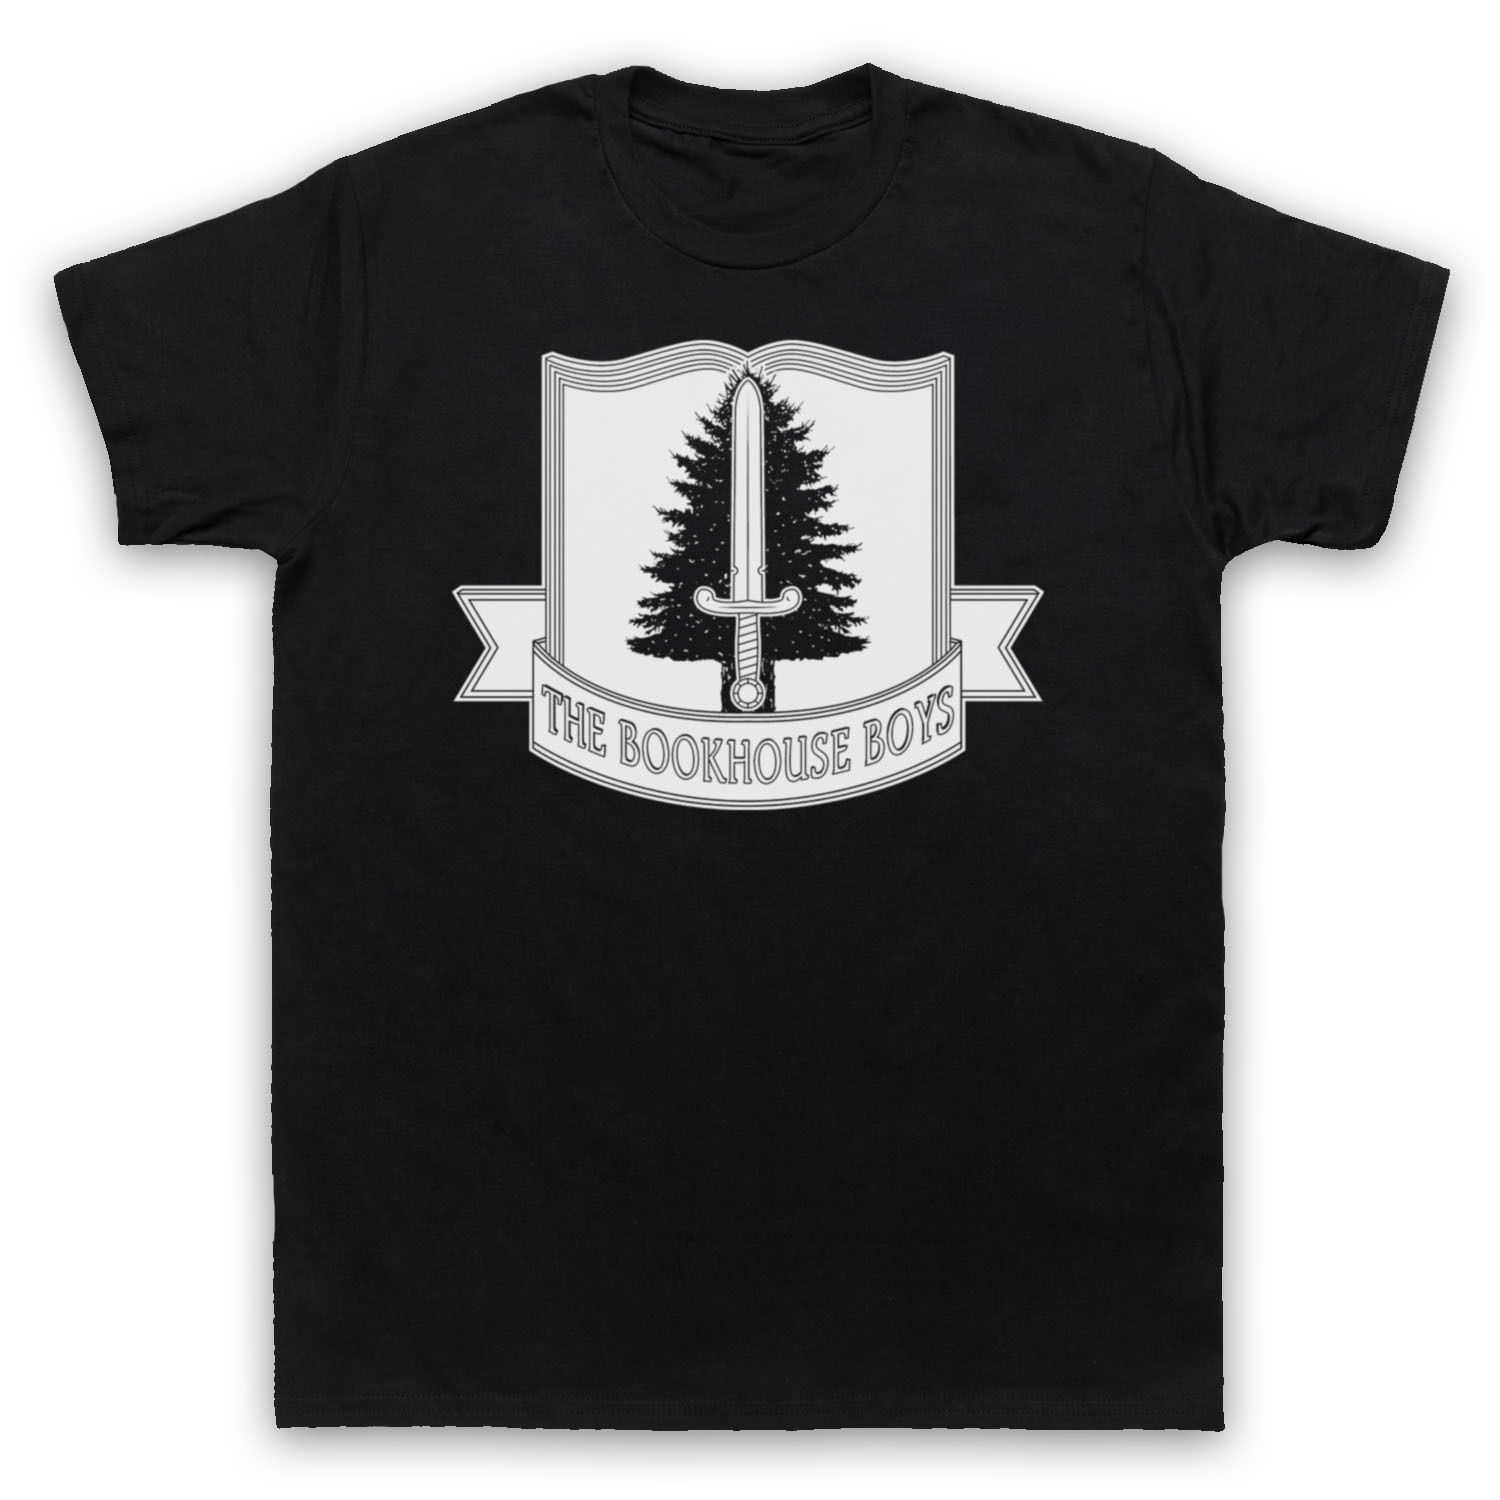 THE BOOKHOUSE BOYS UNOFFICIAL TWIN PEAKS T-SHIRT MENS LADIES KIDS SIZES White Style